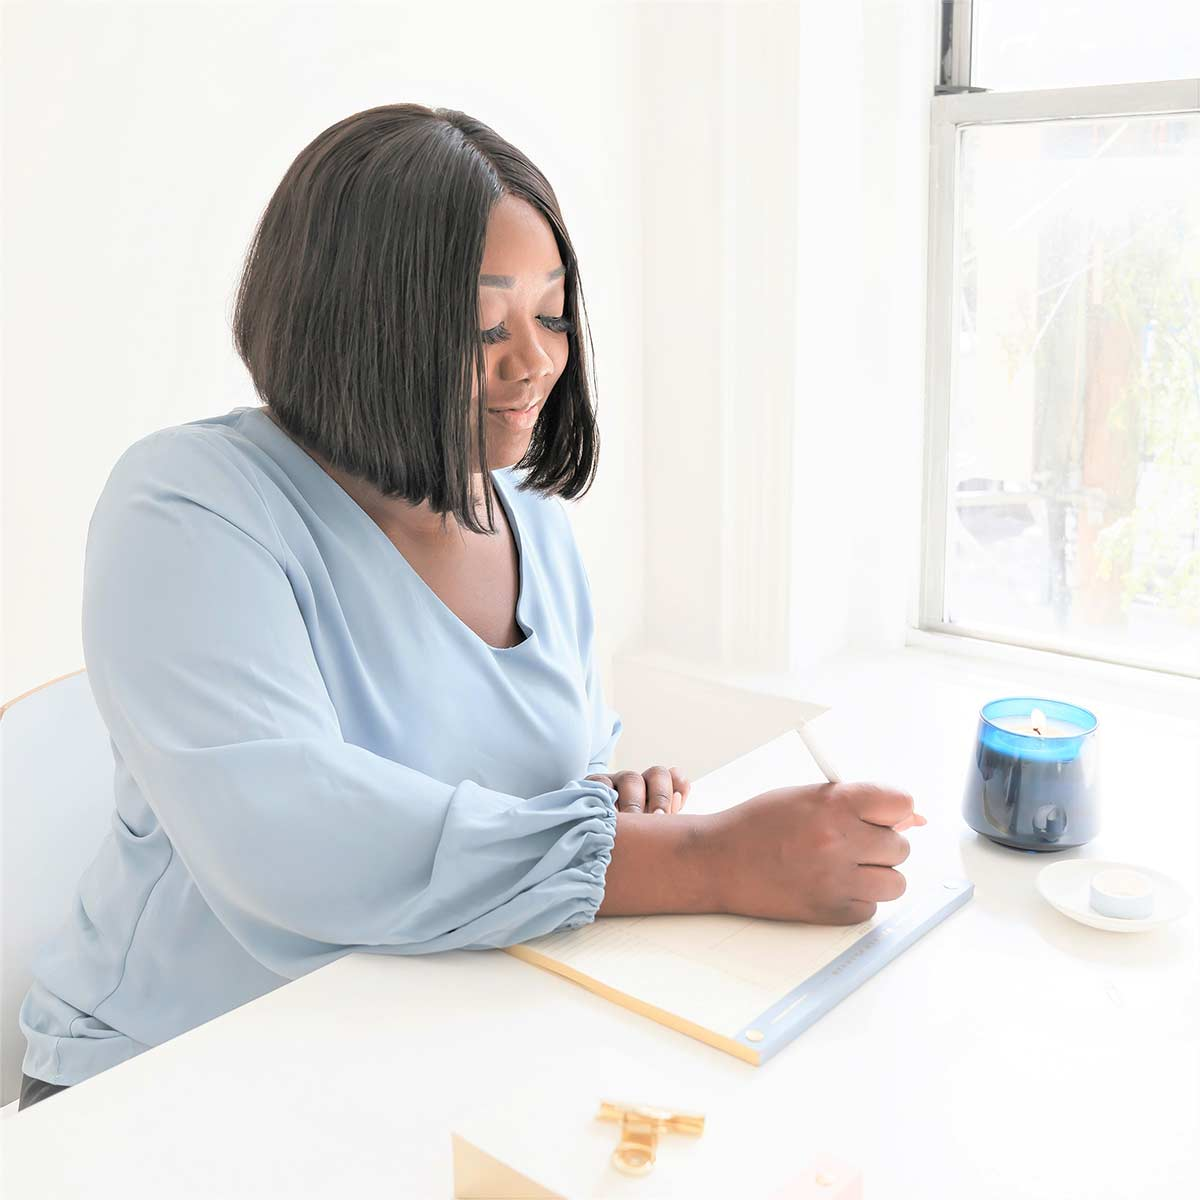 Beautiful Black woman in blue top sitting in bright home office and preparing to do creative journaling.